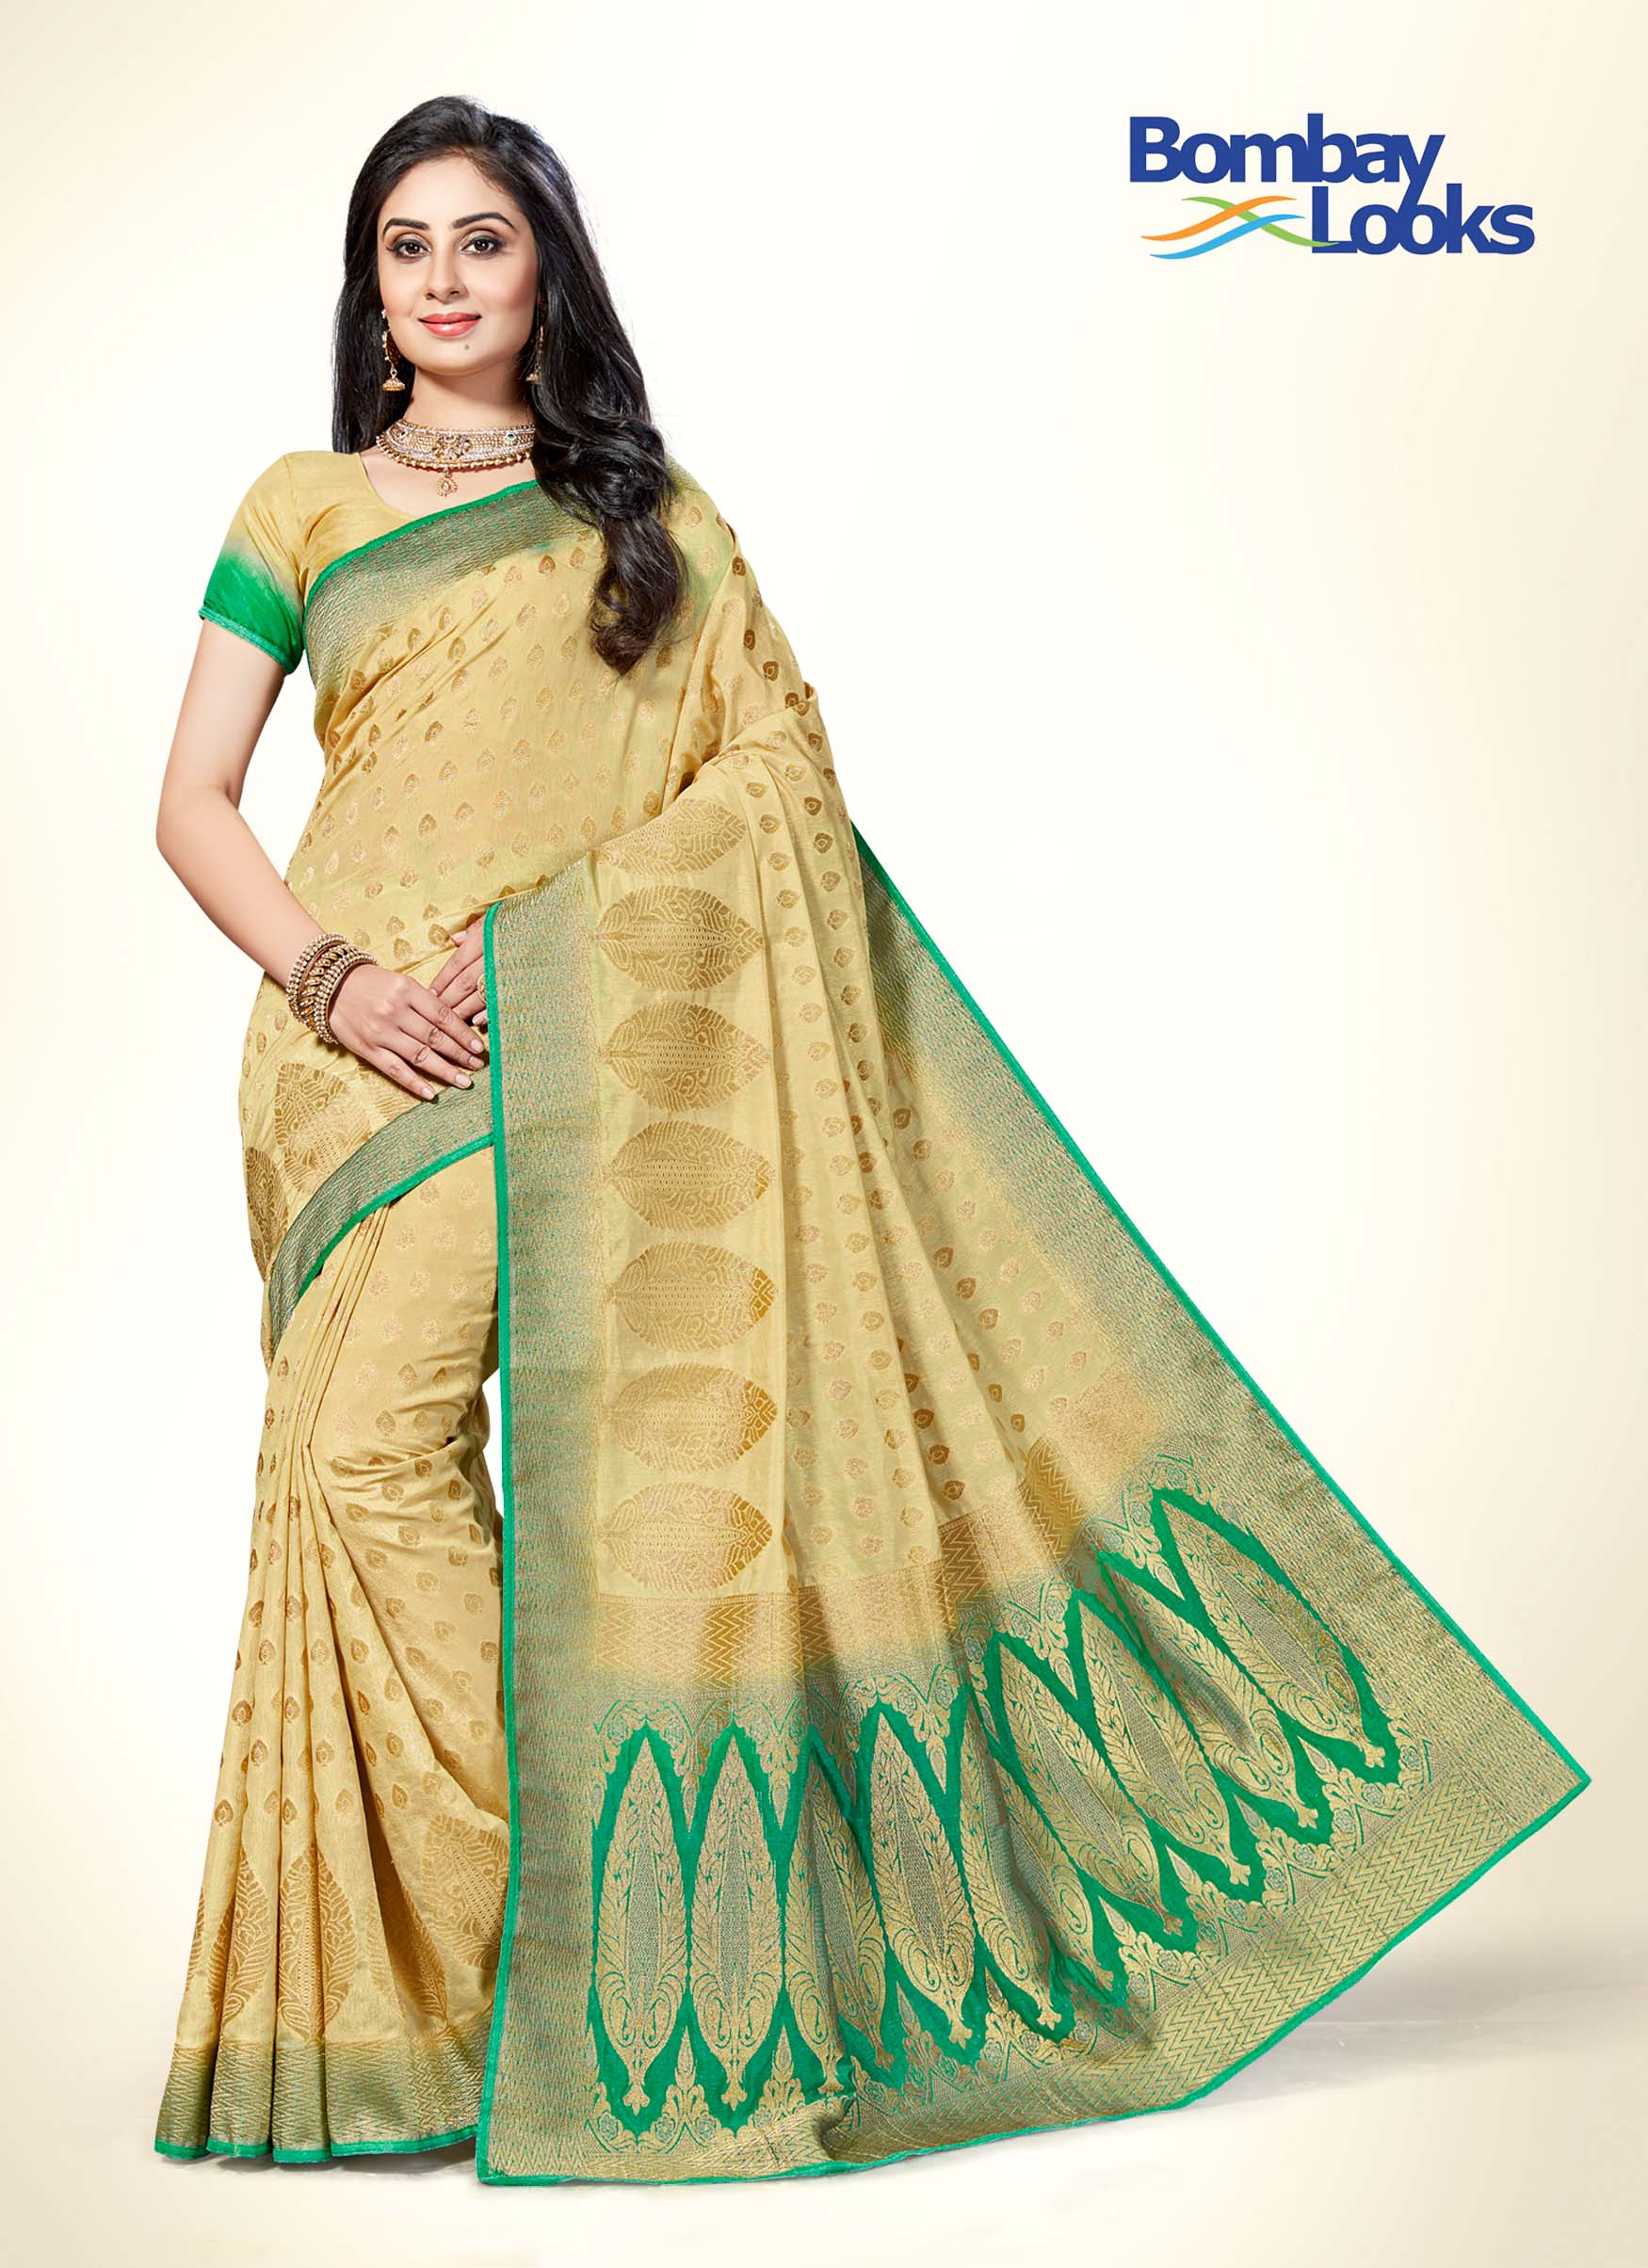 Elegant Gold and Rama shaded saree with intricate gold embroidery